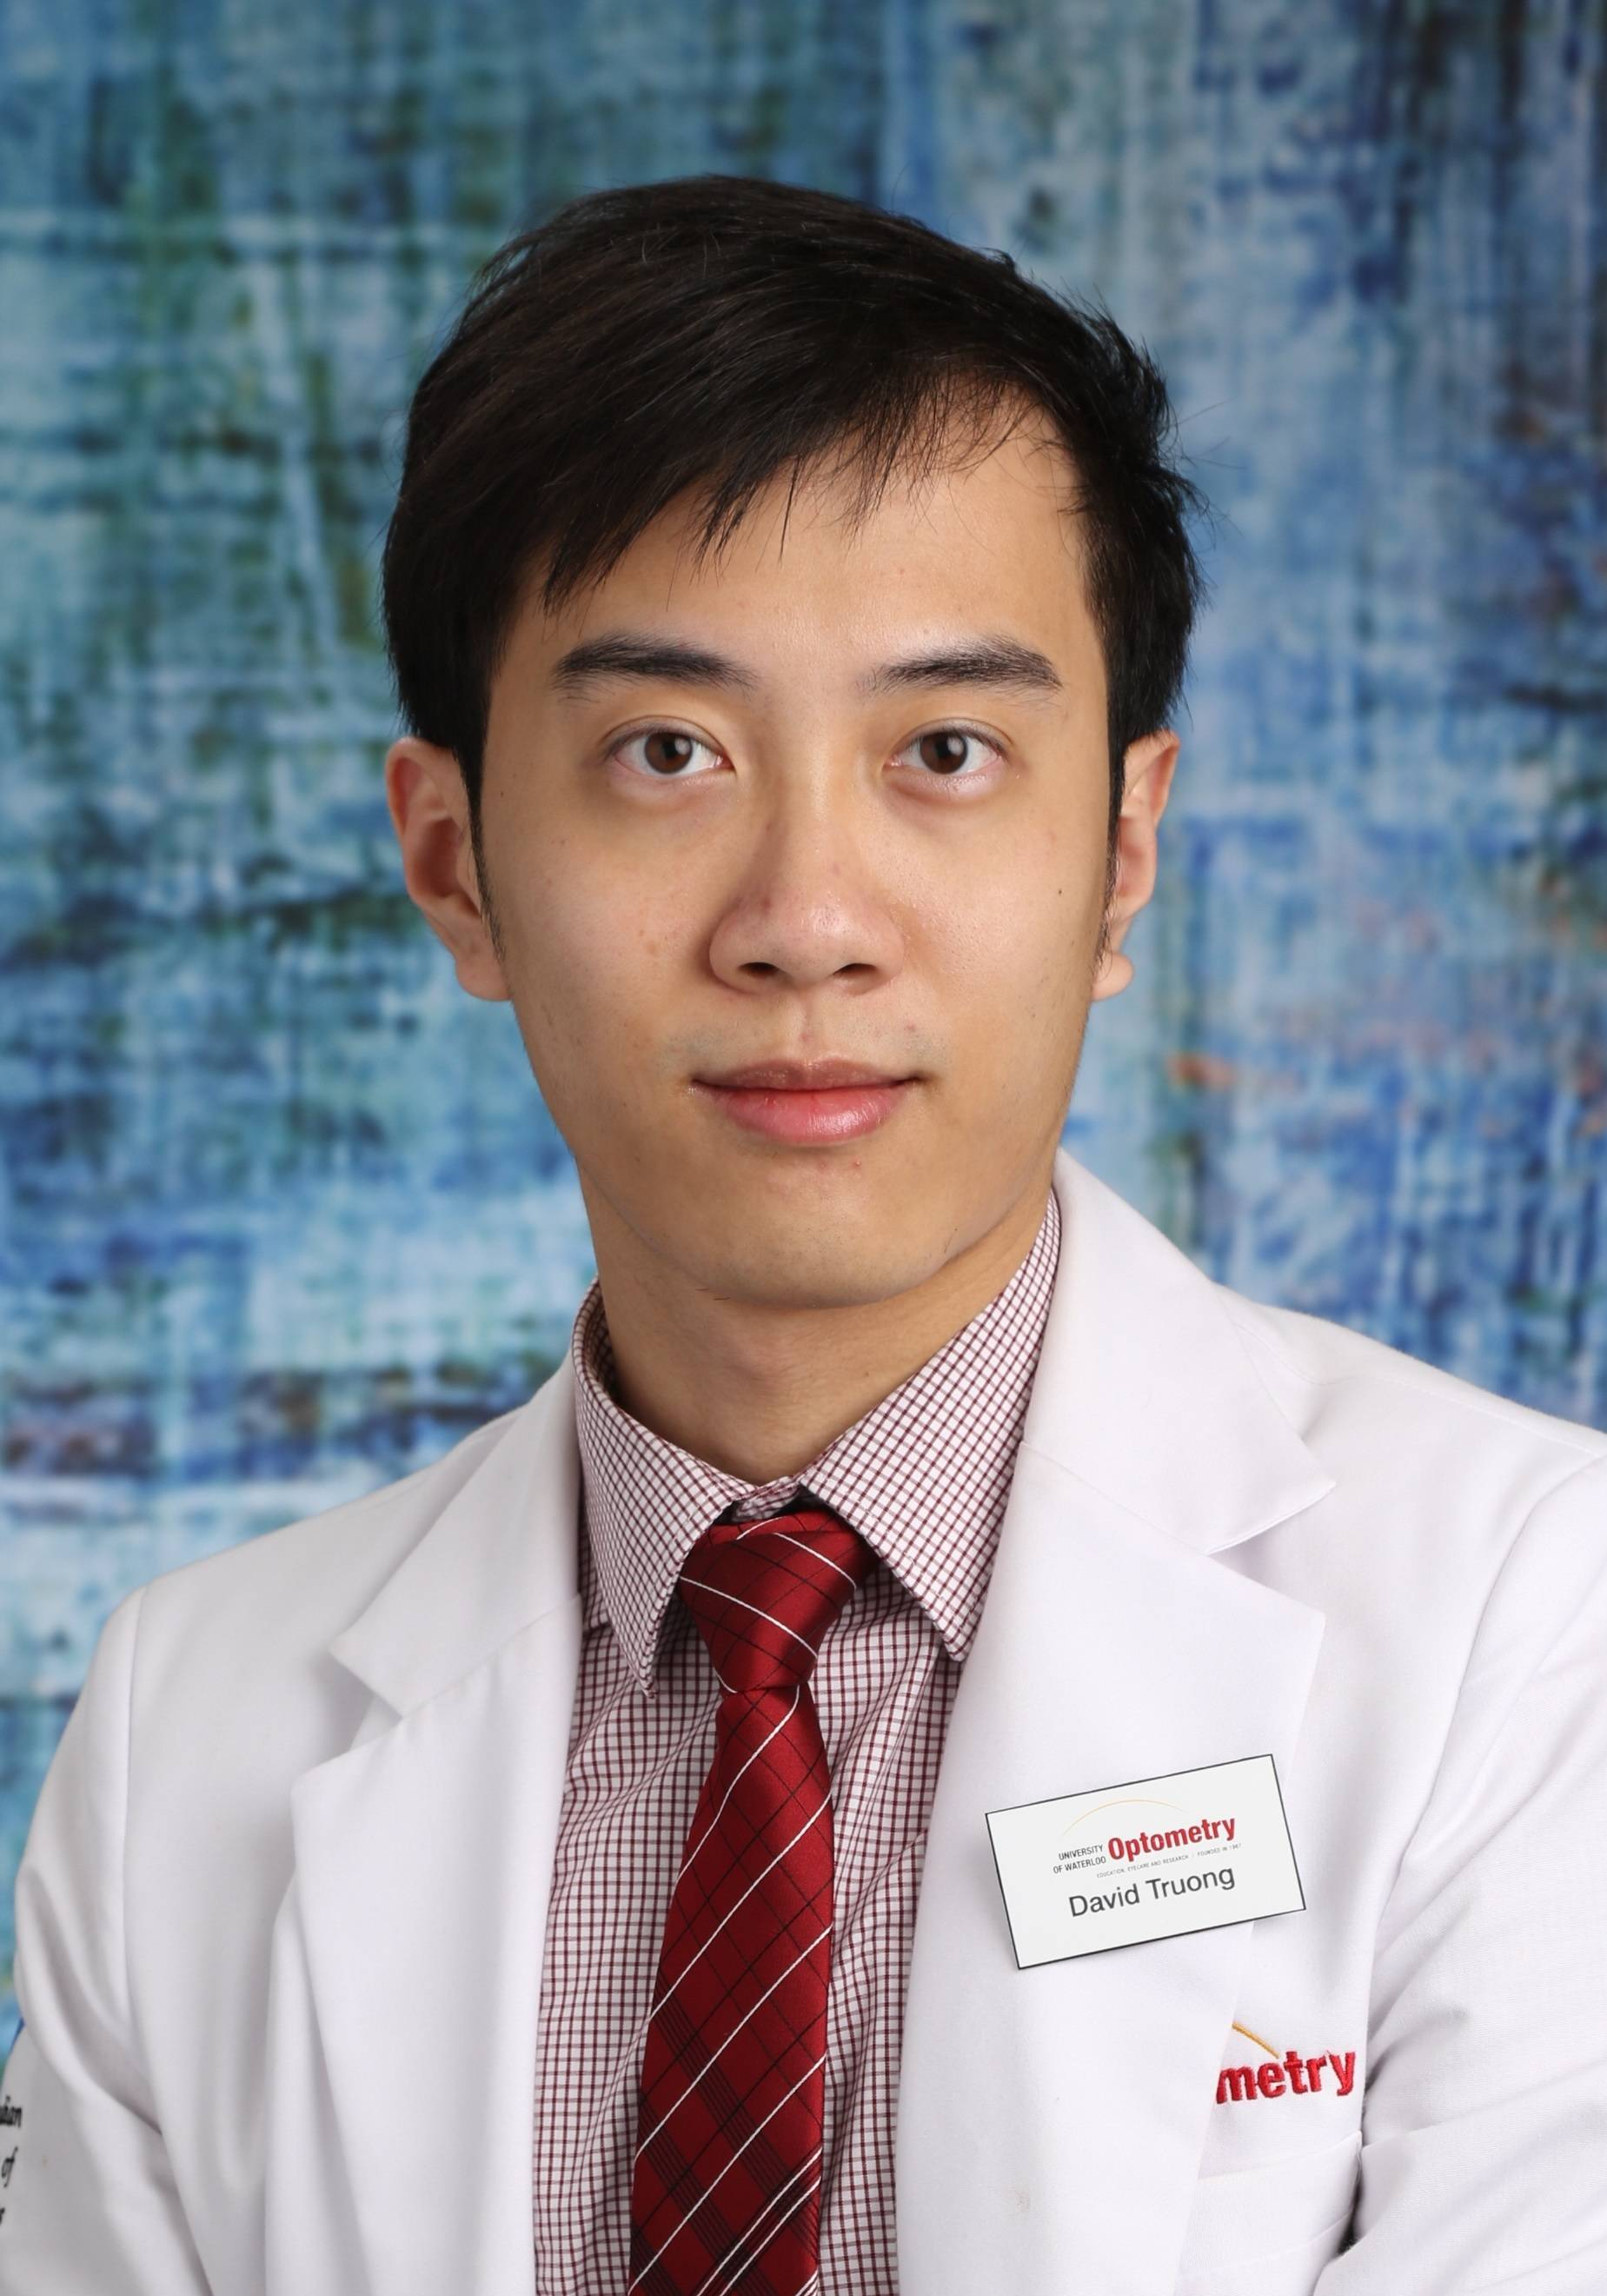 Dr.-David-Truong-Bio-Photo